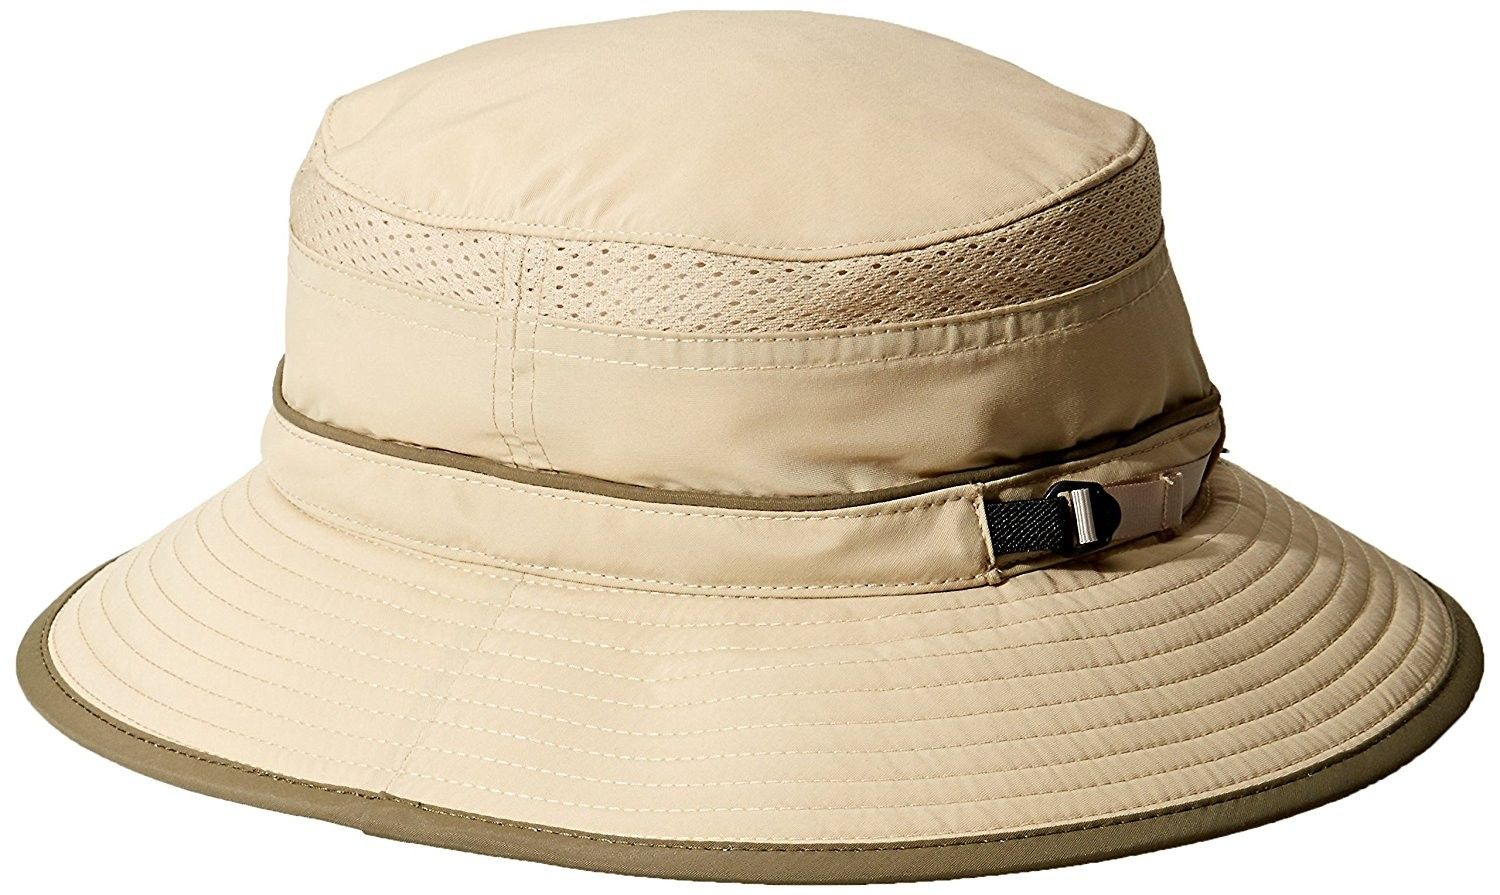 Fun Bucket Hat - Tan Chaparral - CH118W50L8X - Hats   Caps e9fe375ff0